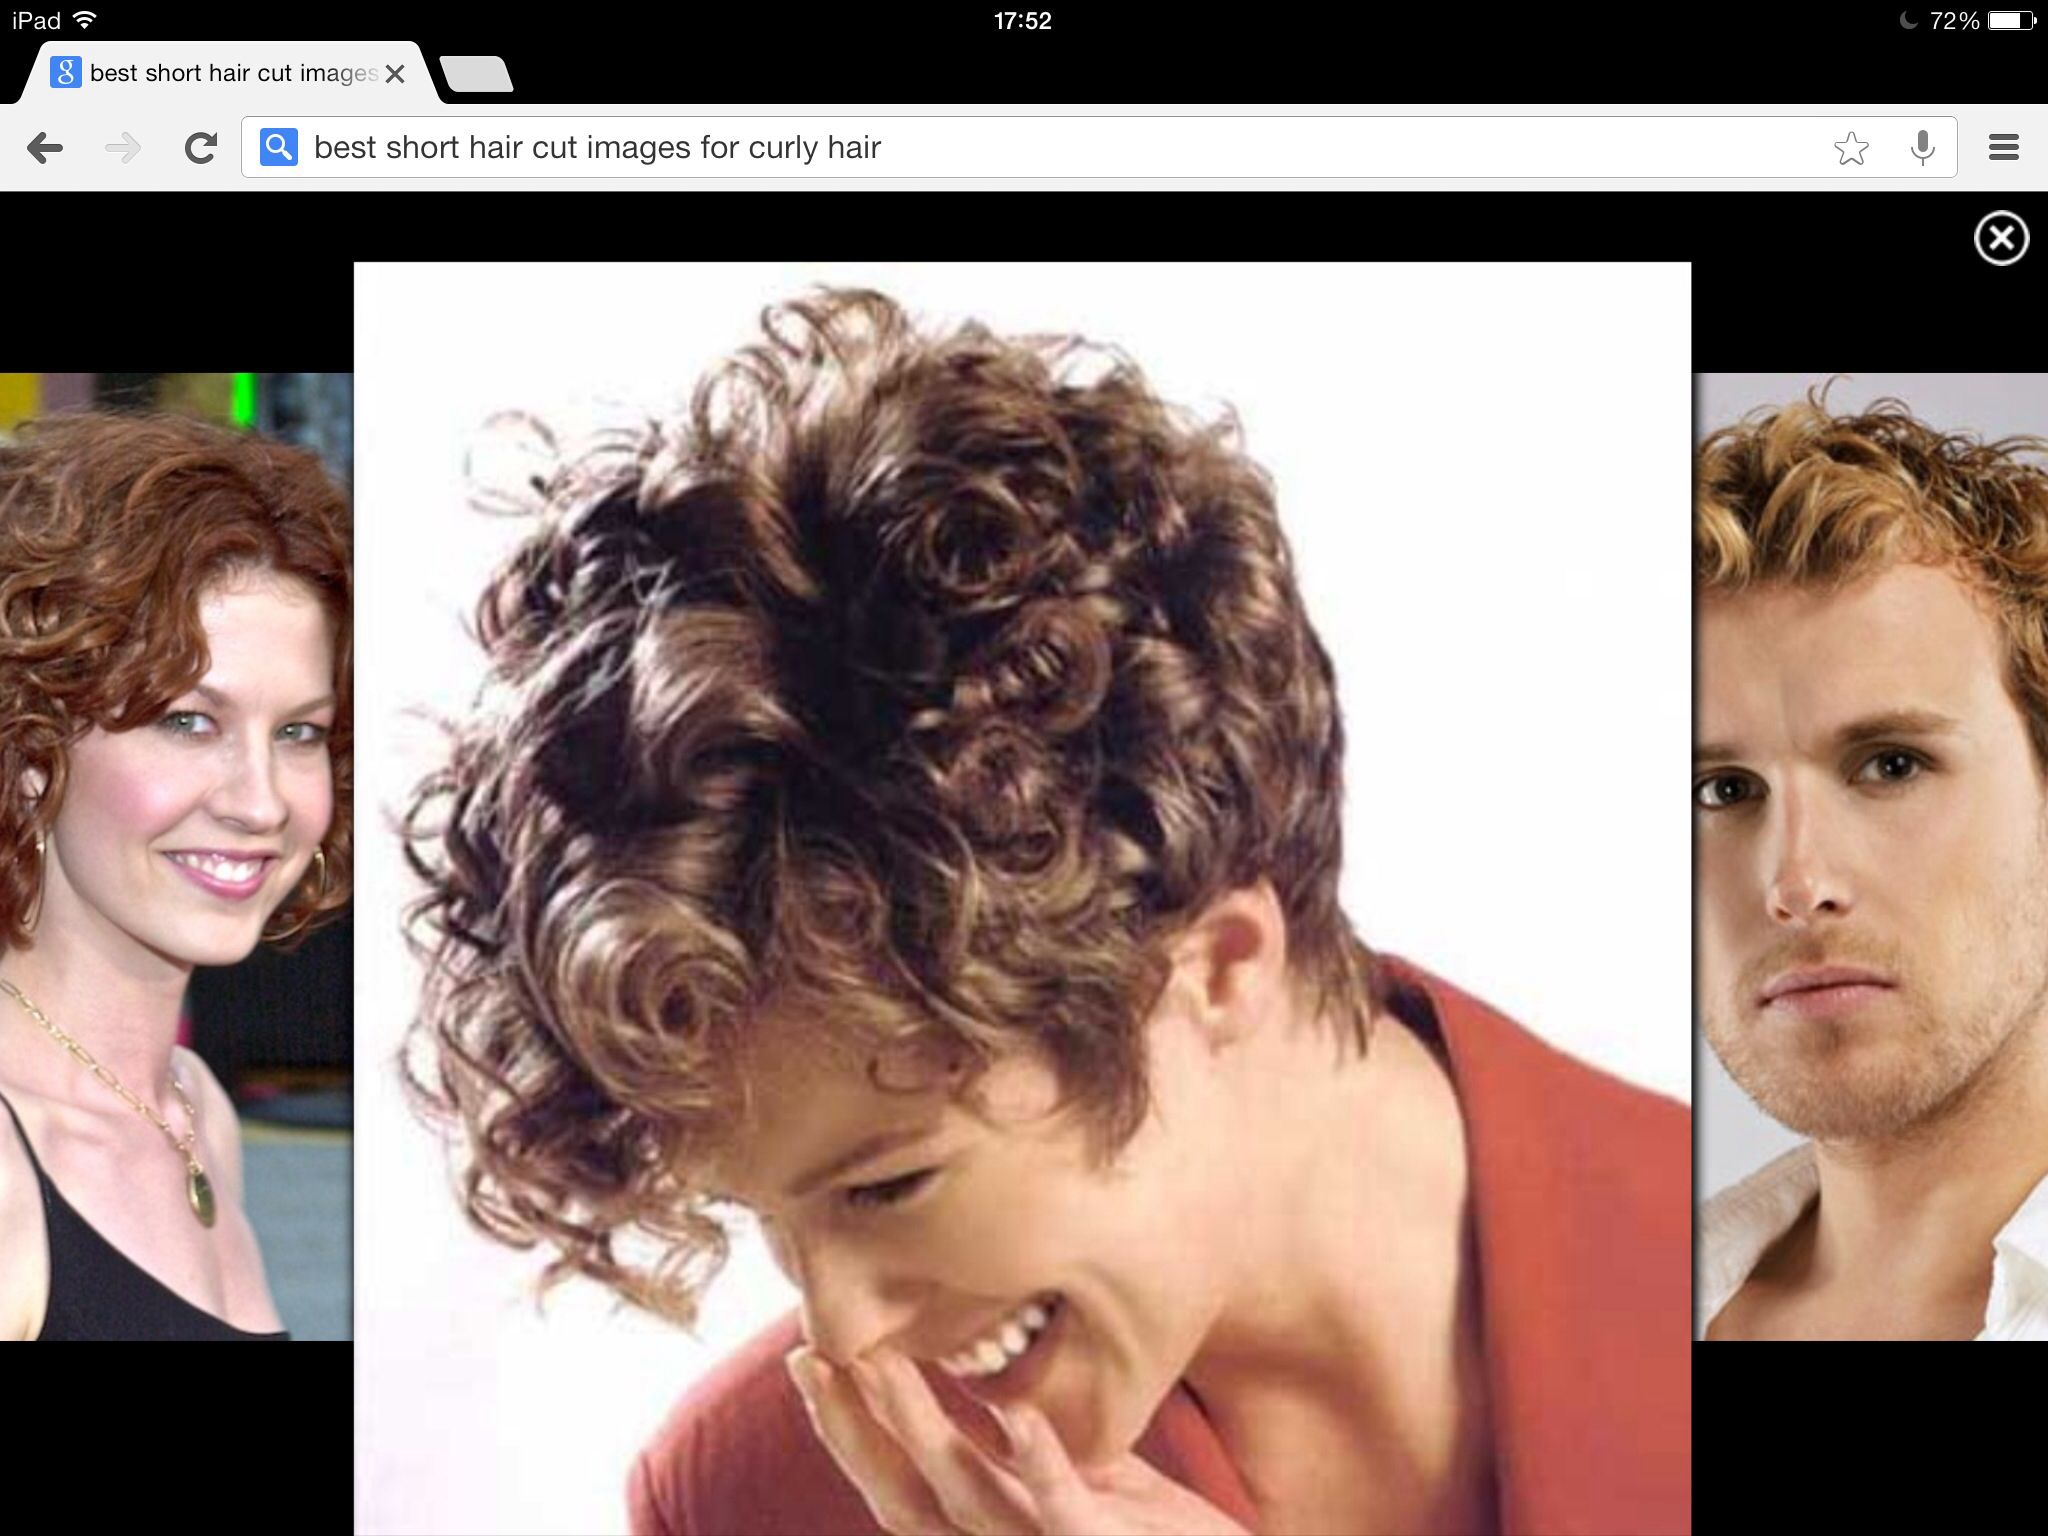 Pin By Branislava Ristic On Frizure In 2020 Short Curly Hairstyles For Women Short Permed Hair Short Curly Haircuts